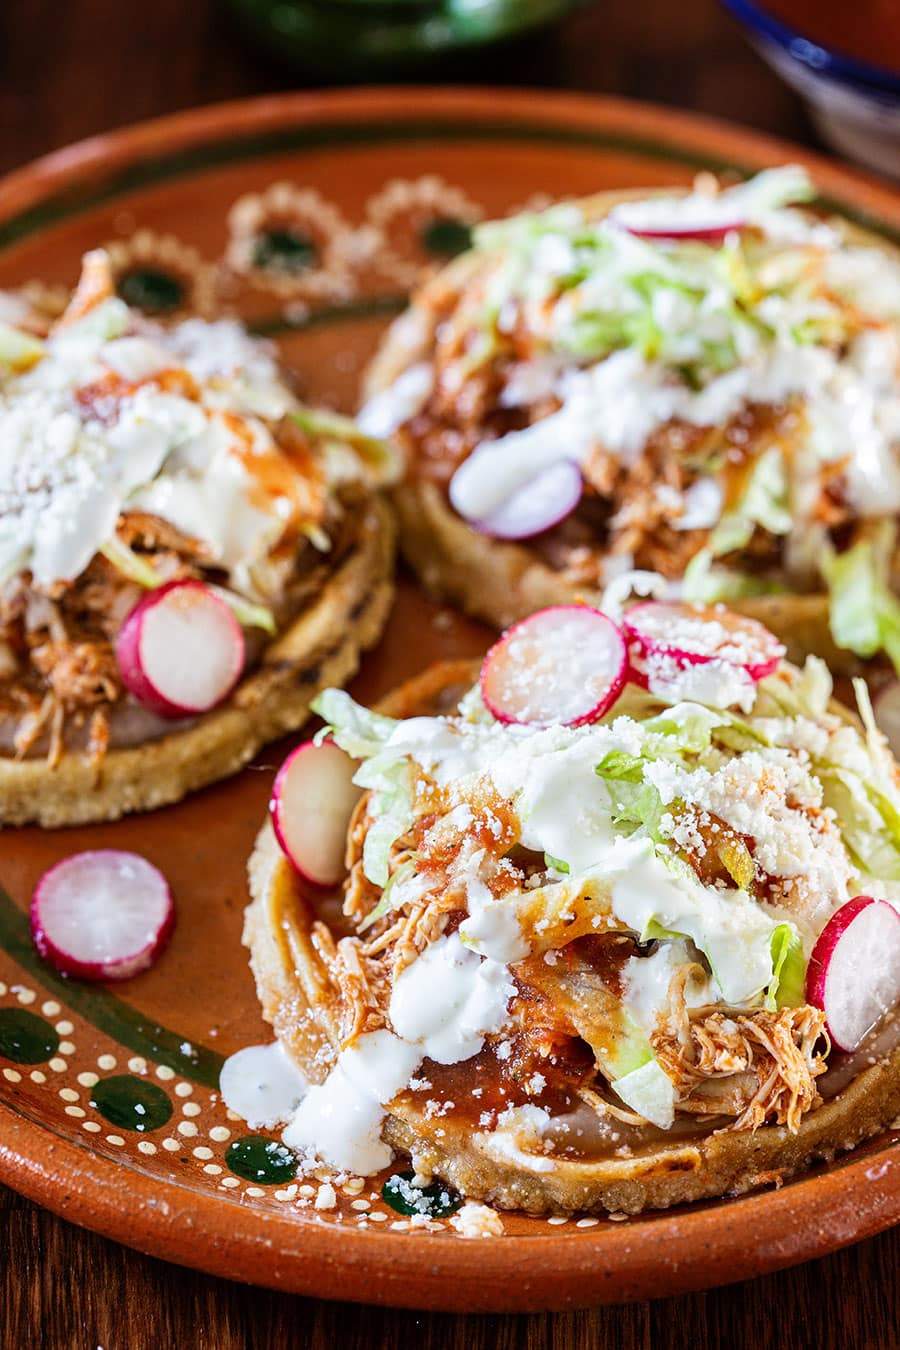 Mexican sopes de pollo served with various toppings.